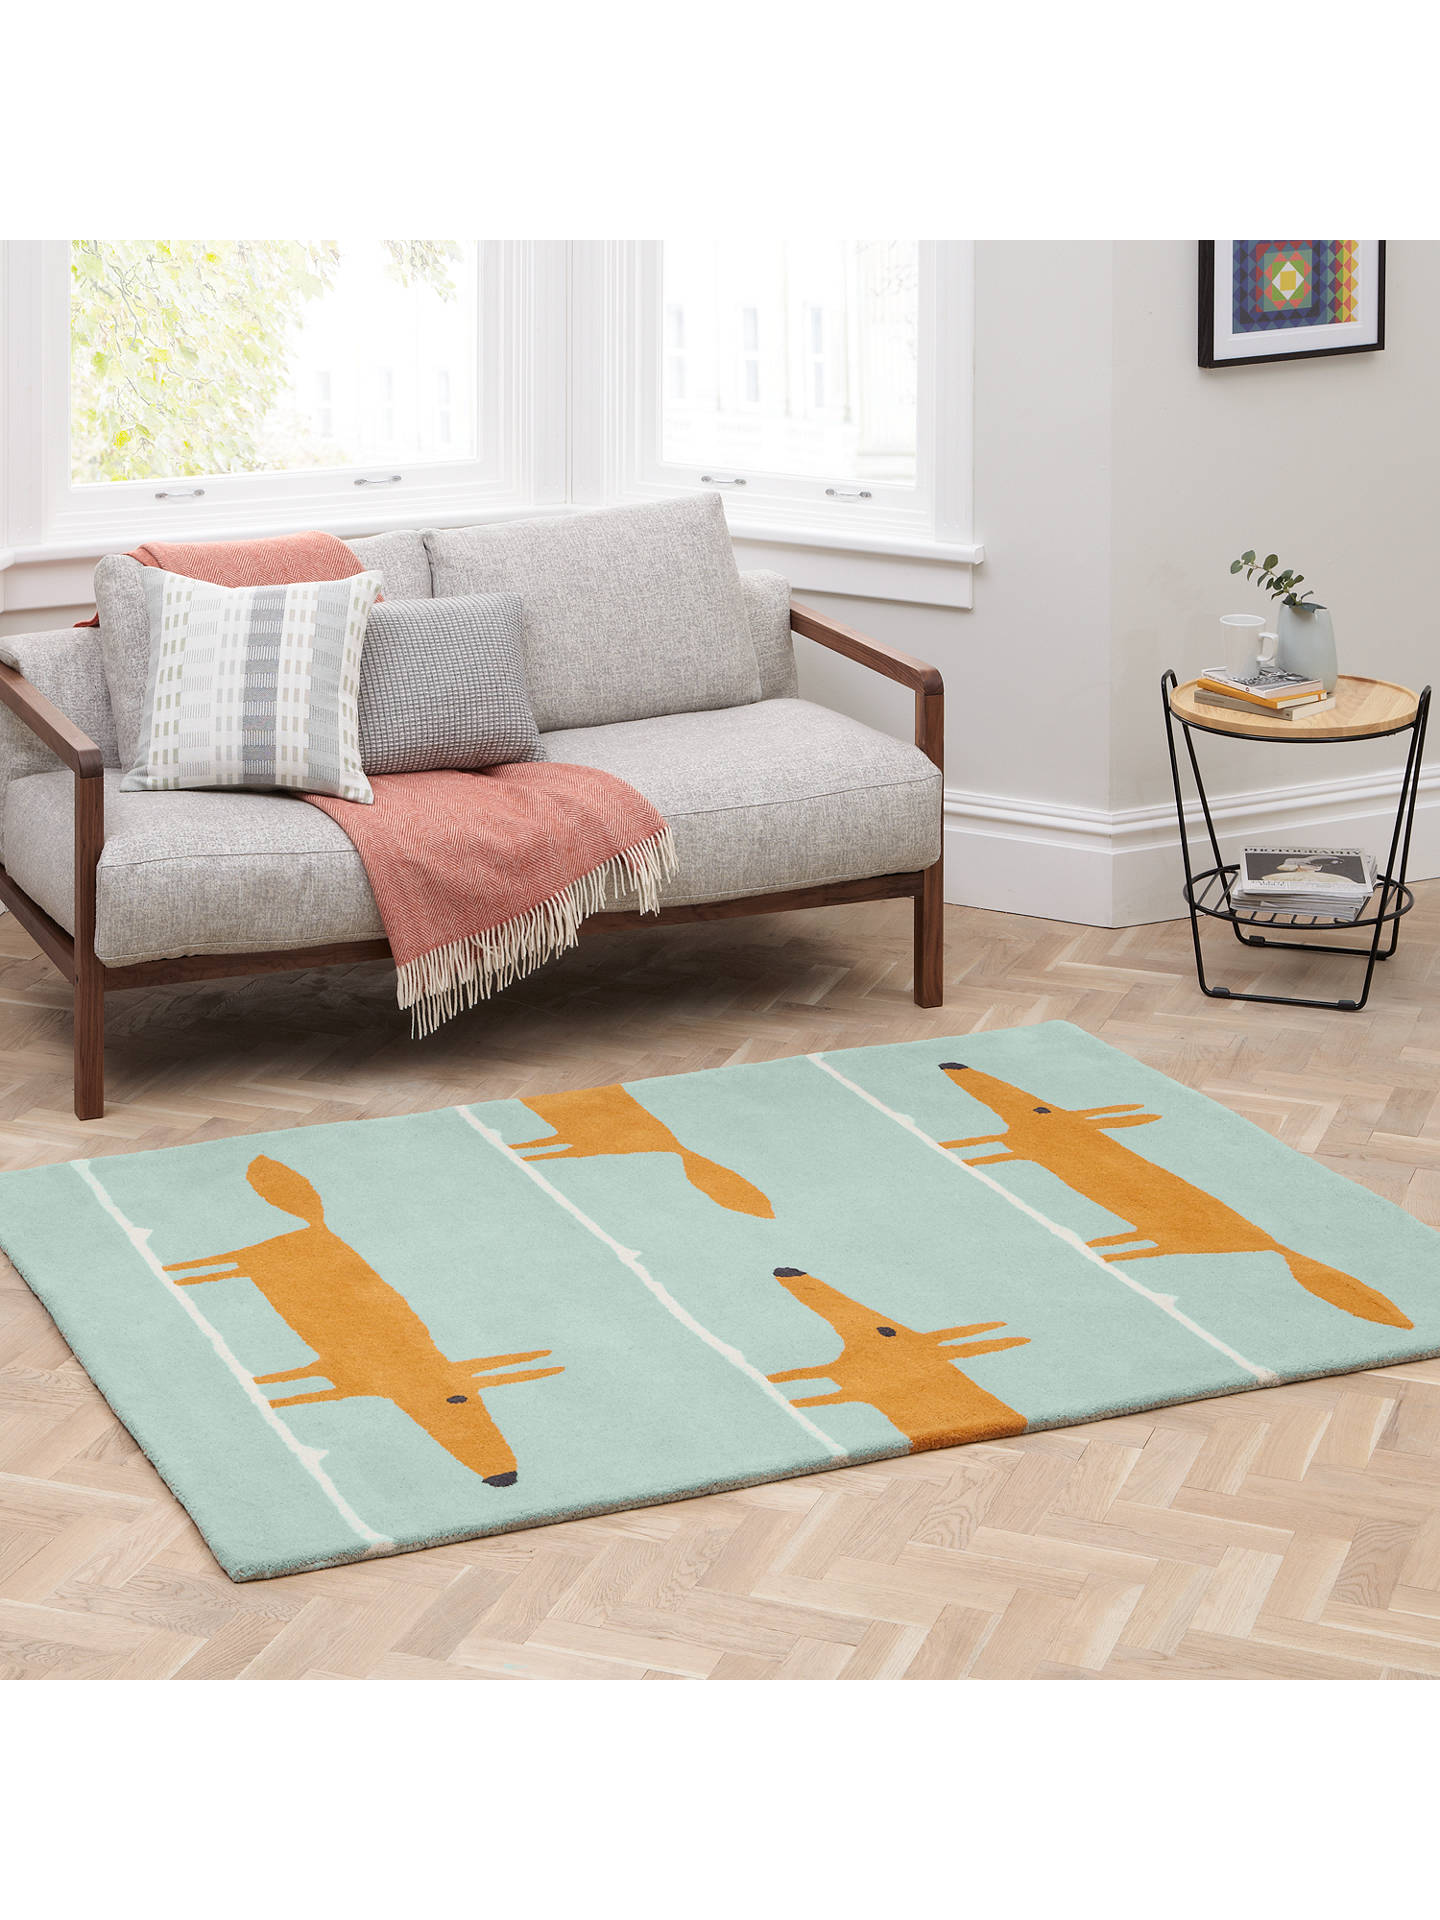 BuyScion Mr Fox Rug, Aqua, L150 x W90cm Online at johnlewis.com